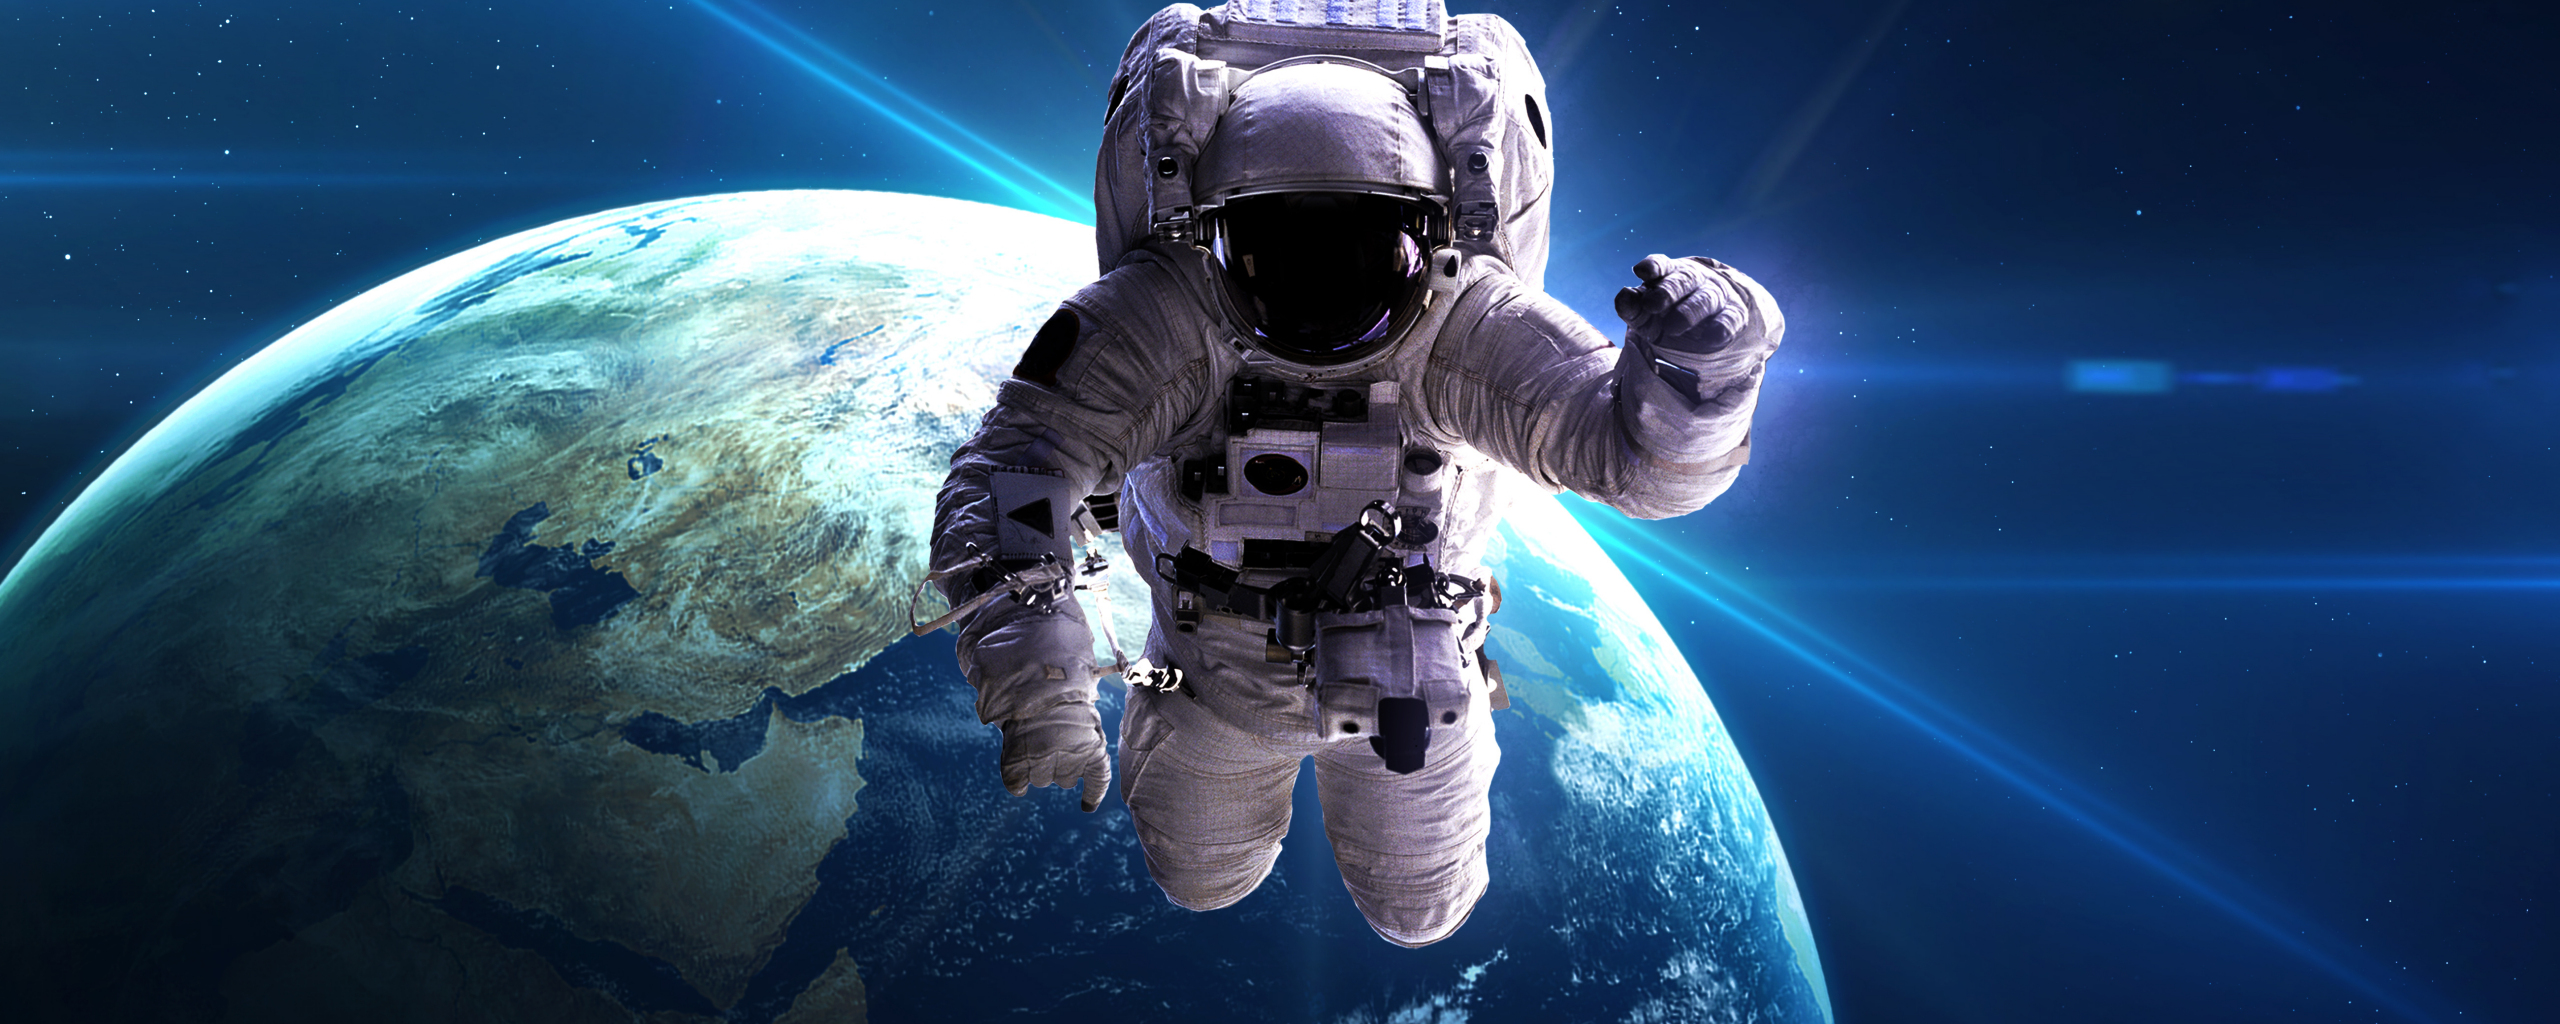 Desktop Wallpaper Astronaut Space Earth Planet Hd Image Picture Background F4cede